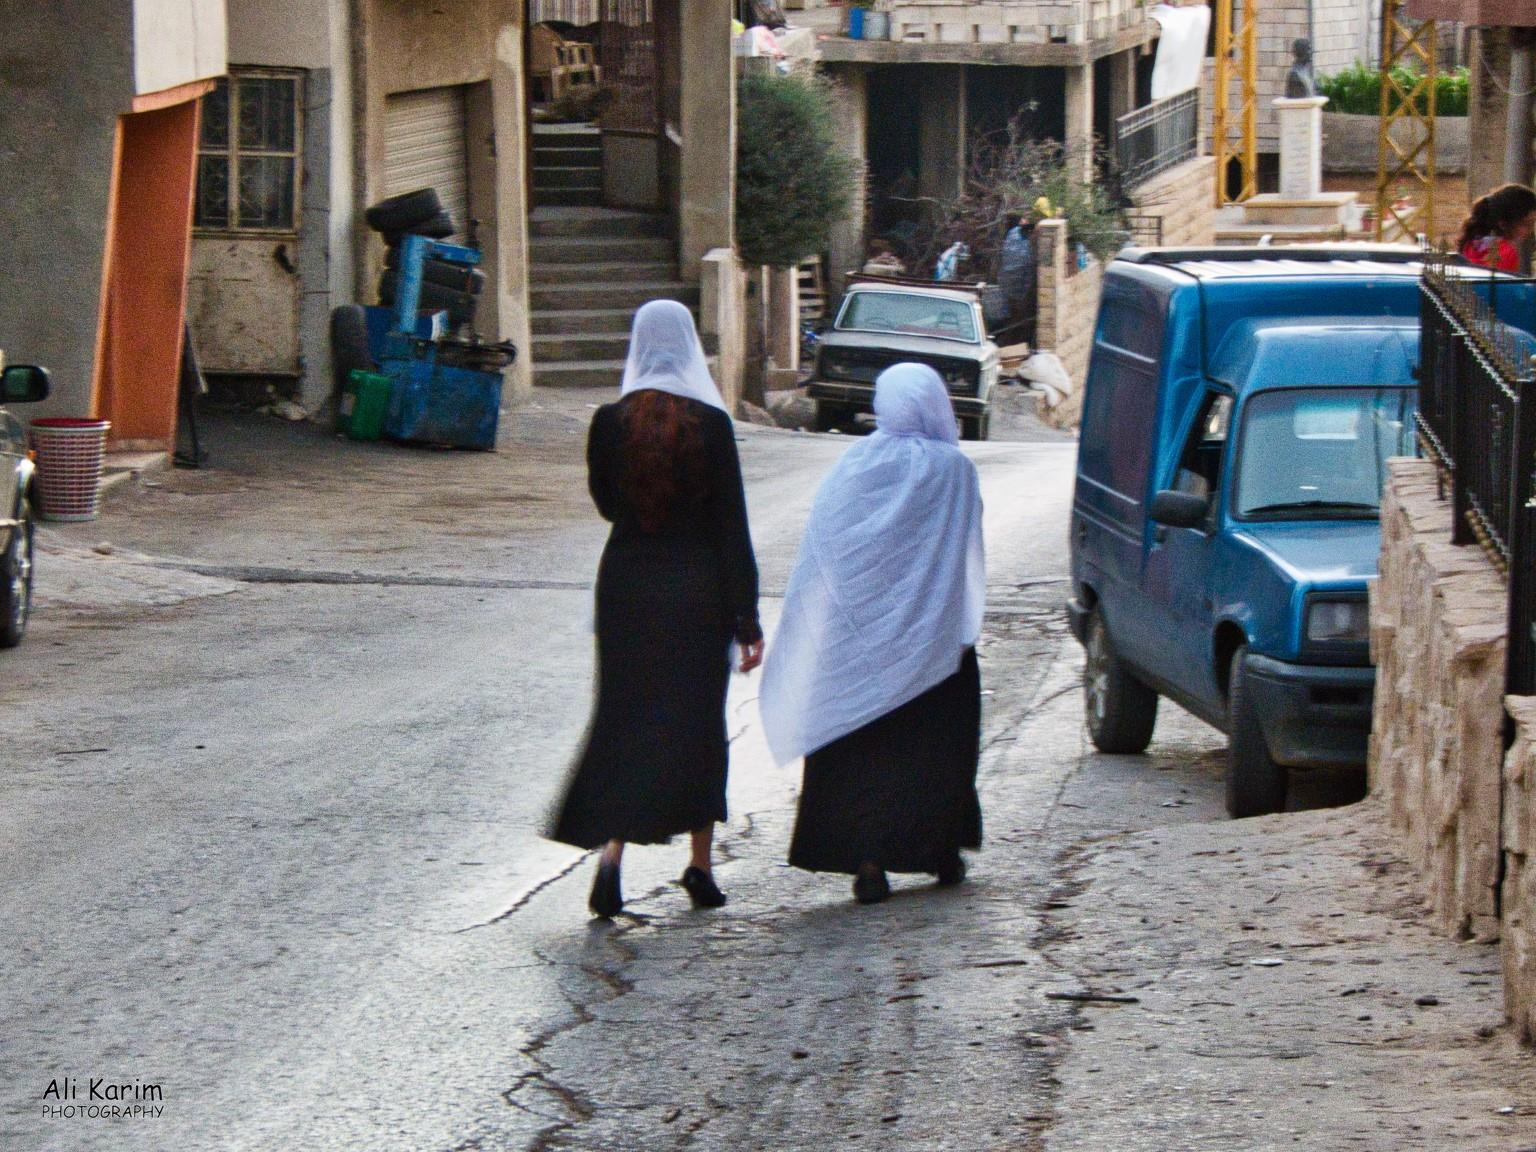 Bekaa Valley Winery, Chouf Mountains & the Druze Women were mostly dressed like this; black dress with white shawls covering their hair